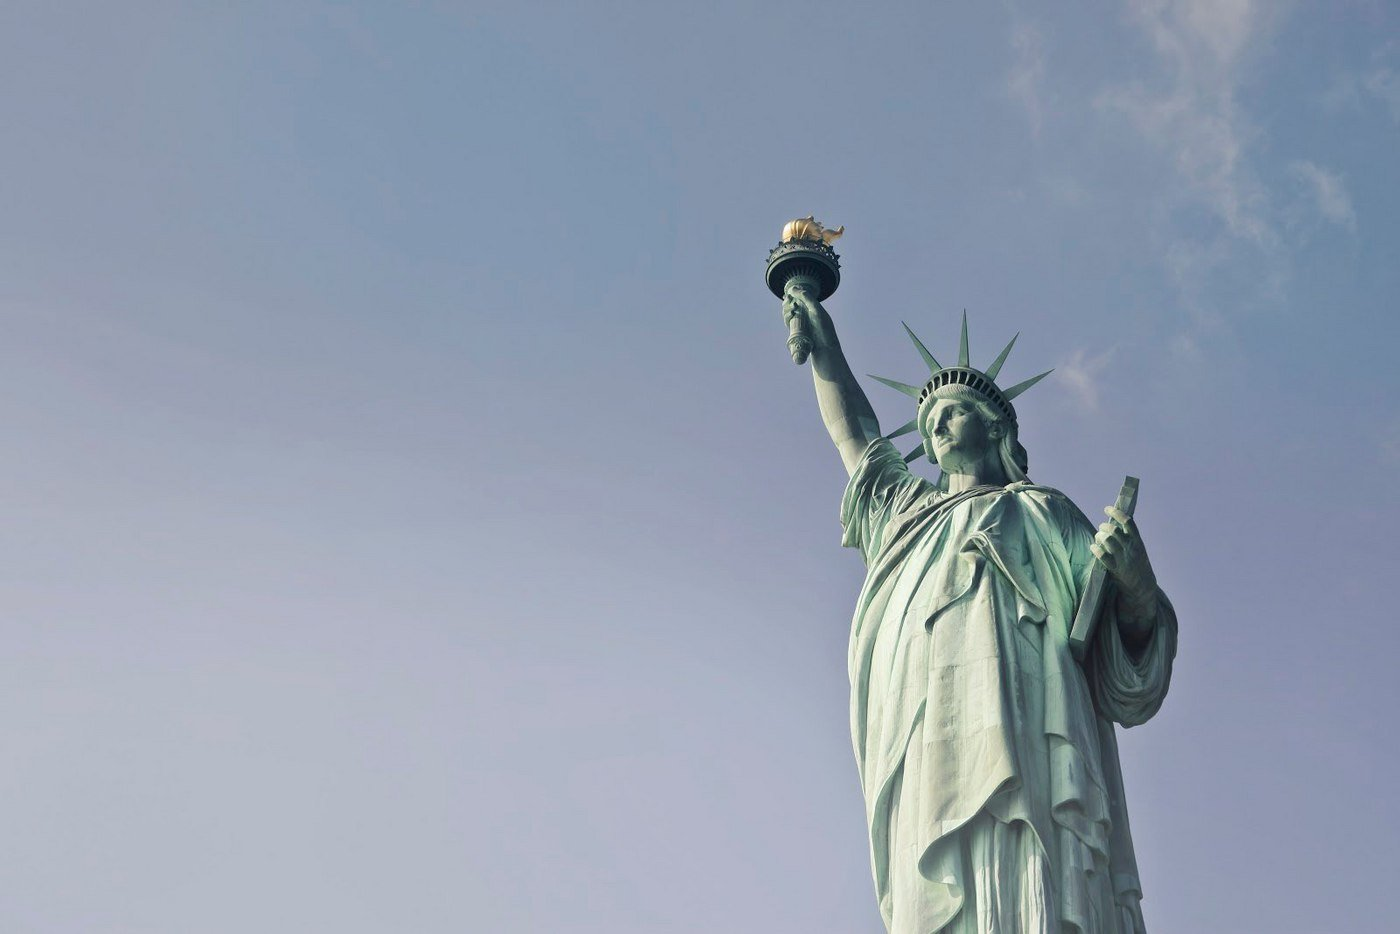 The Statue Of Liberty is the most famous example of copper that has gone through the patina process.